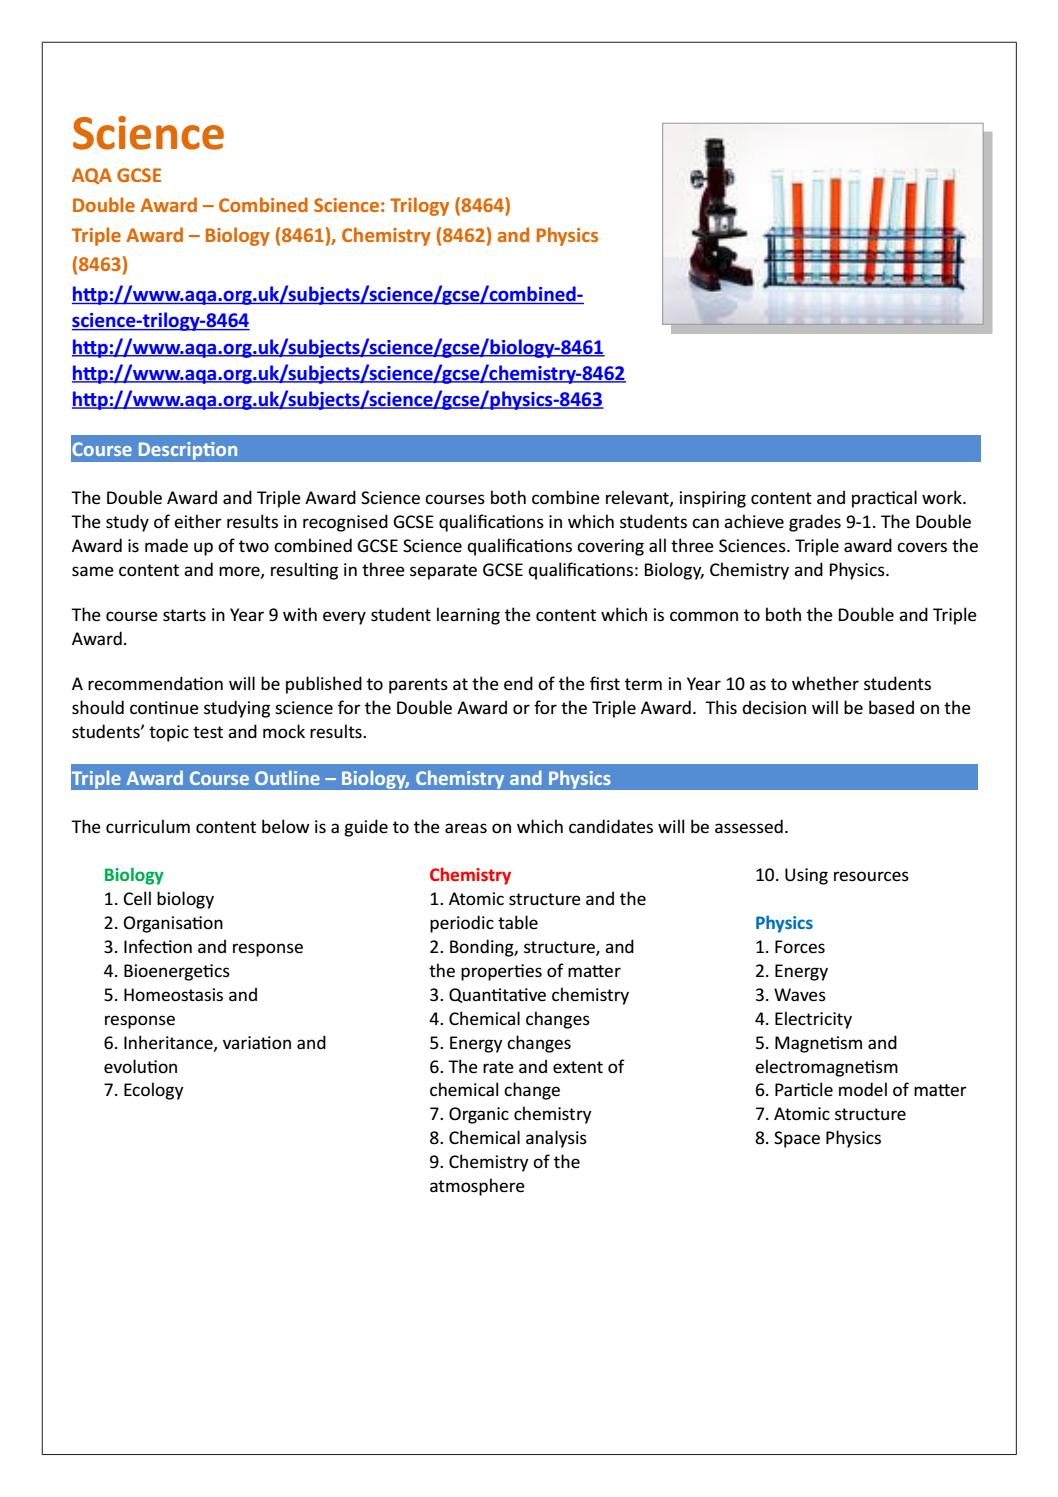 year 9 options guide by gems wellington academy silicon oasis issuu - Periodic Table Aqa Igcse